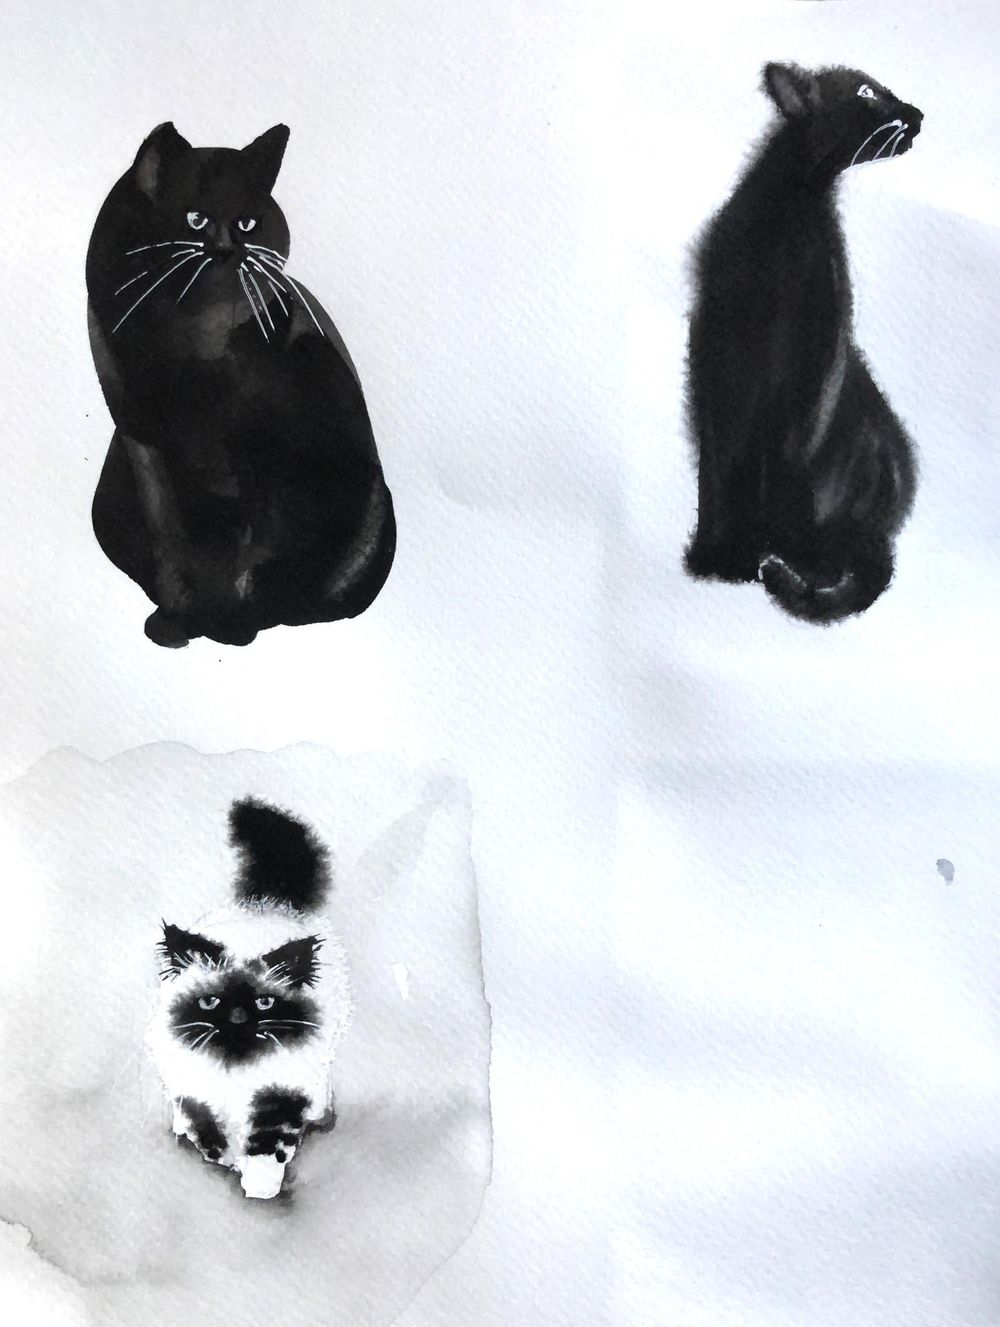 Monochrome cats - image 3 - student project